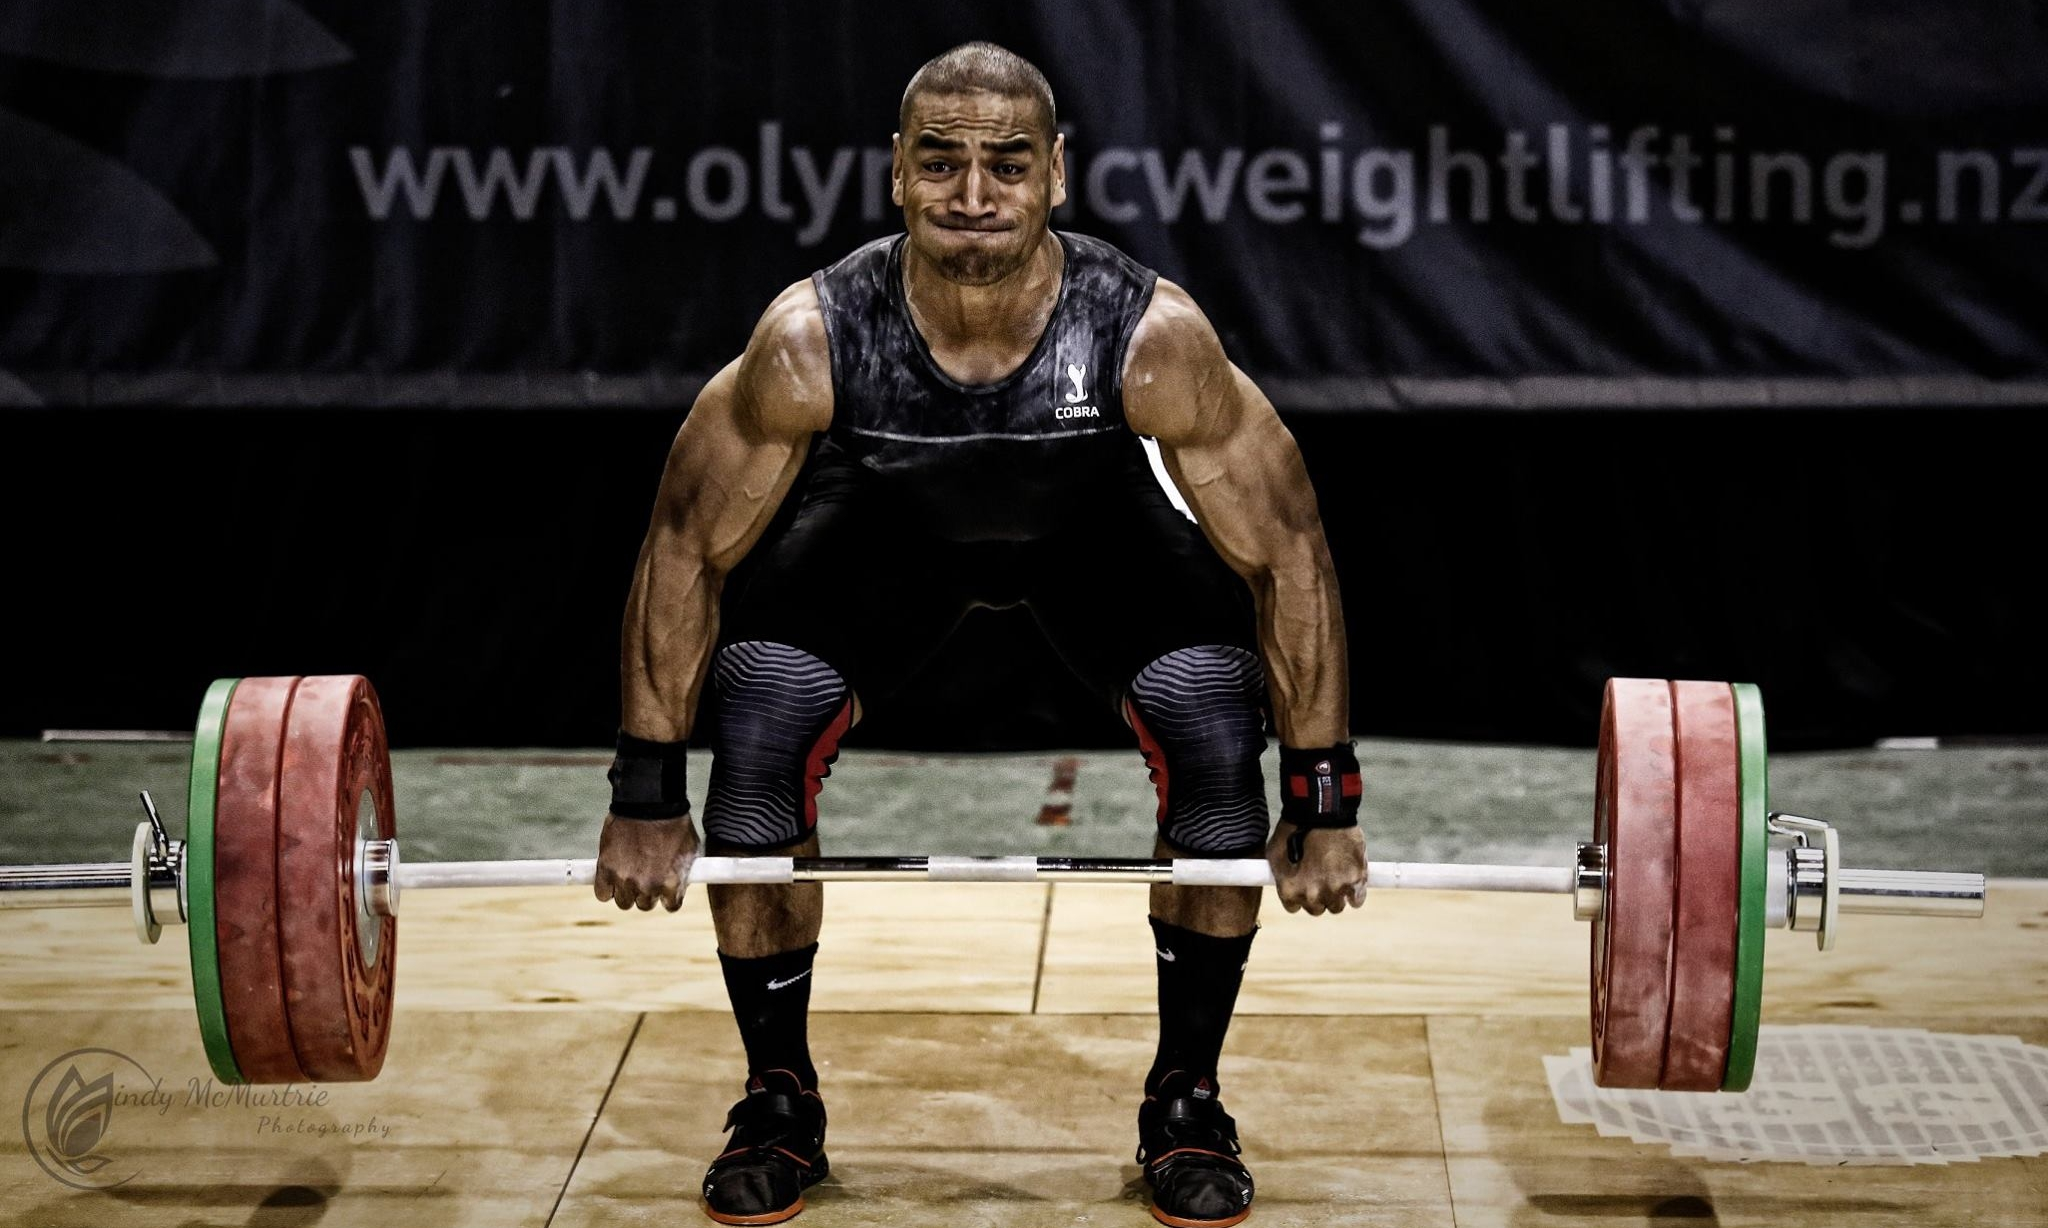 Olympic Weightlifting Suit - Australia